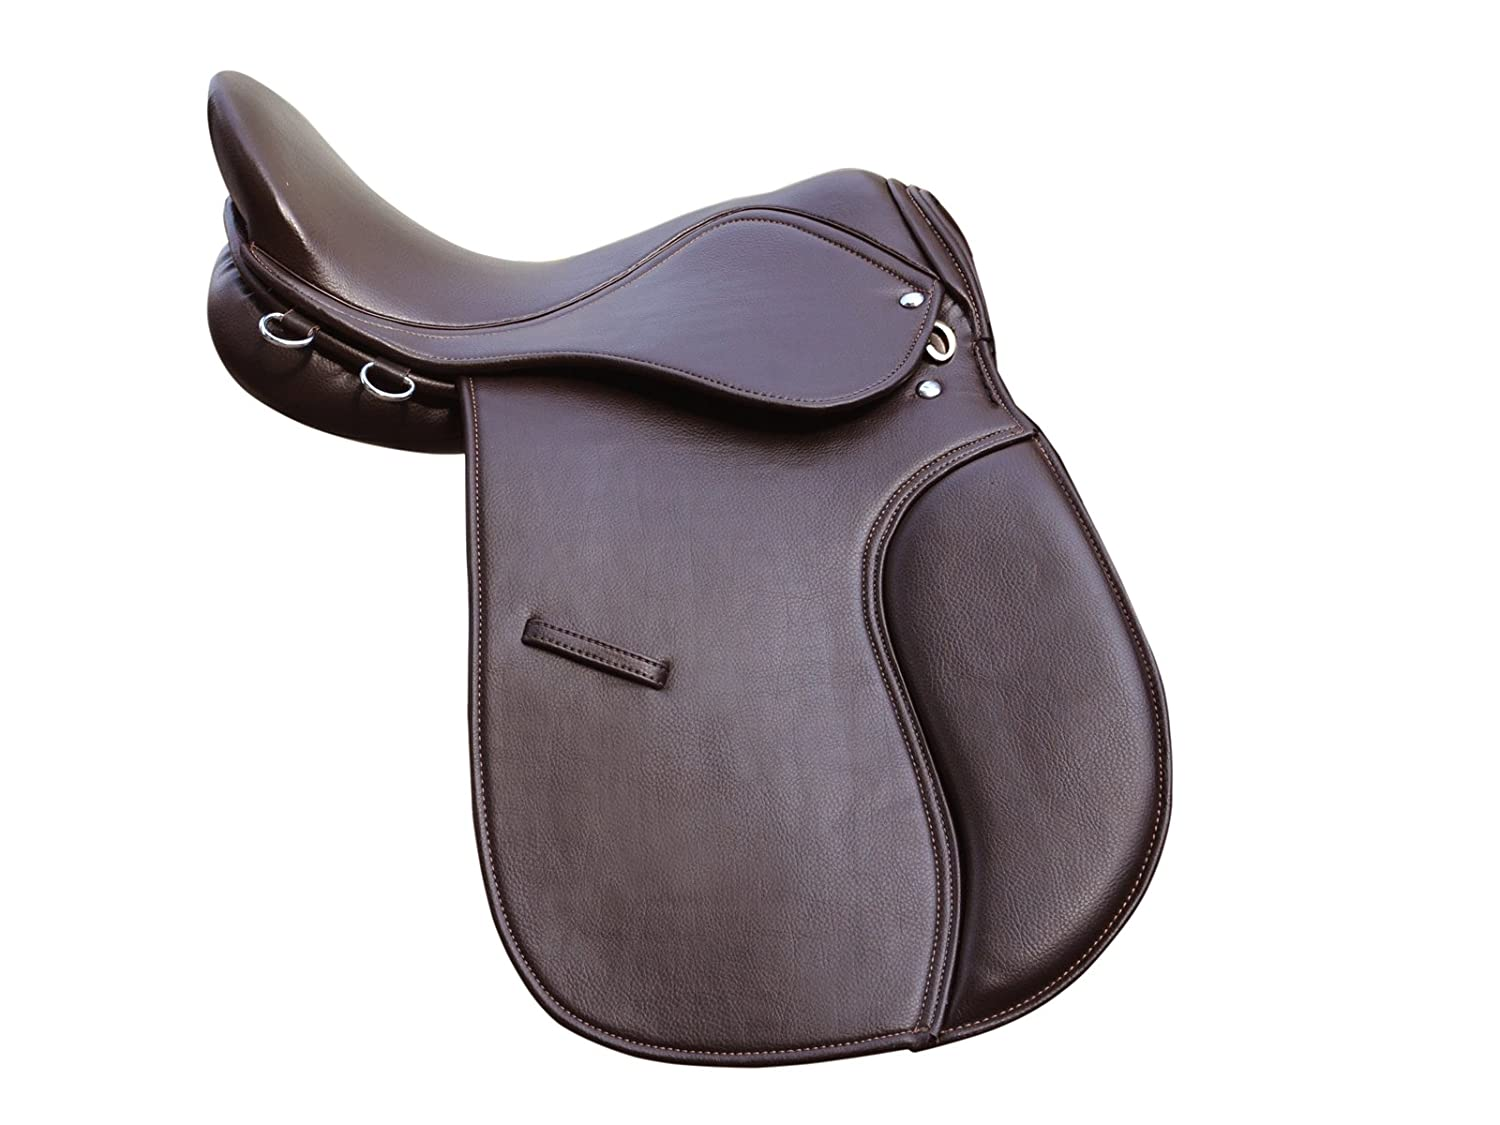 Synthetic General Purpose Halflinger Saddle Wide fit Brown 18 inch Pets2Care